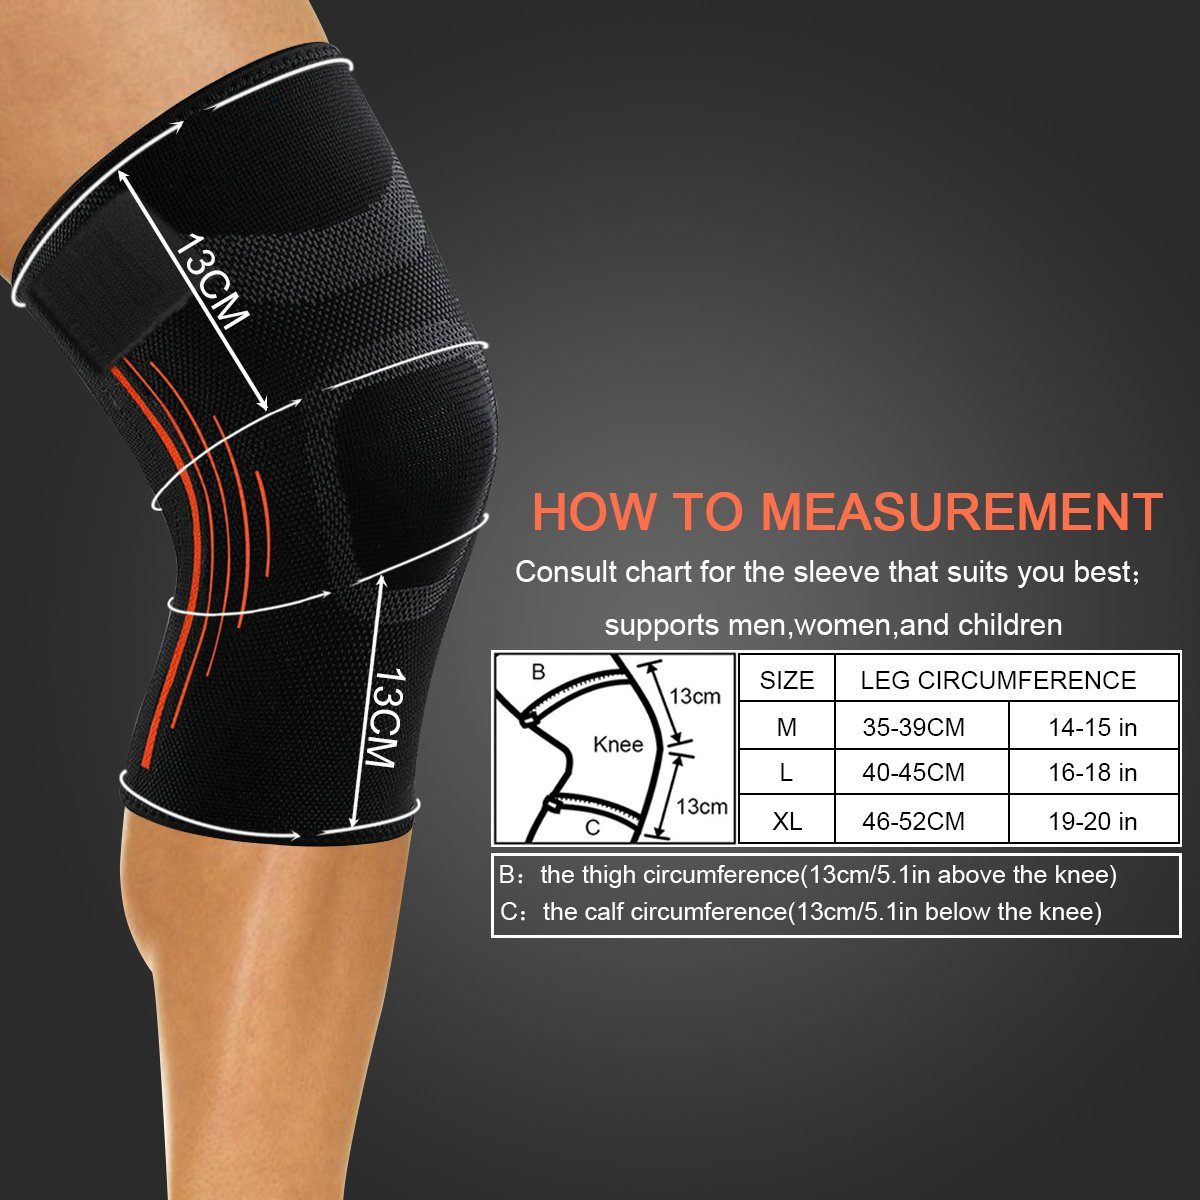 723ce25966 Amazon.com : Knee brace, NATUCE knee sleeve with removable non slip strap  for knee compression support-Single : Sports & Outdoors